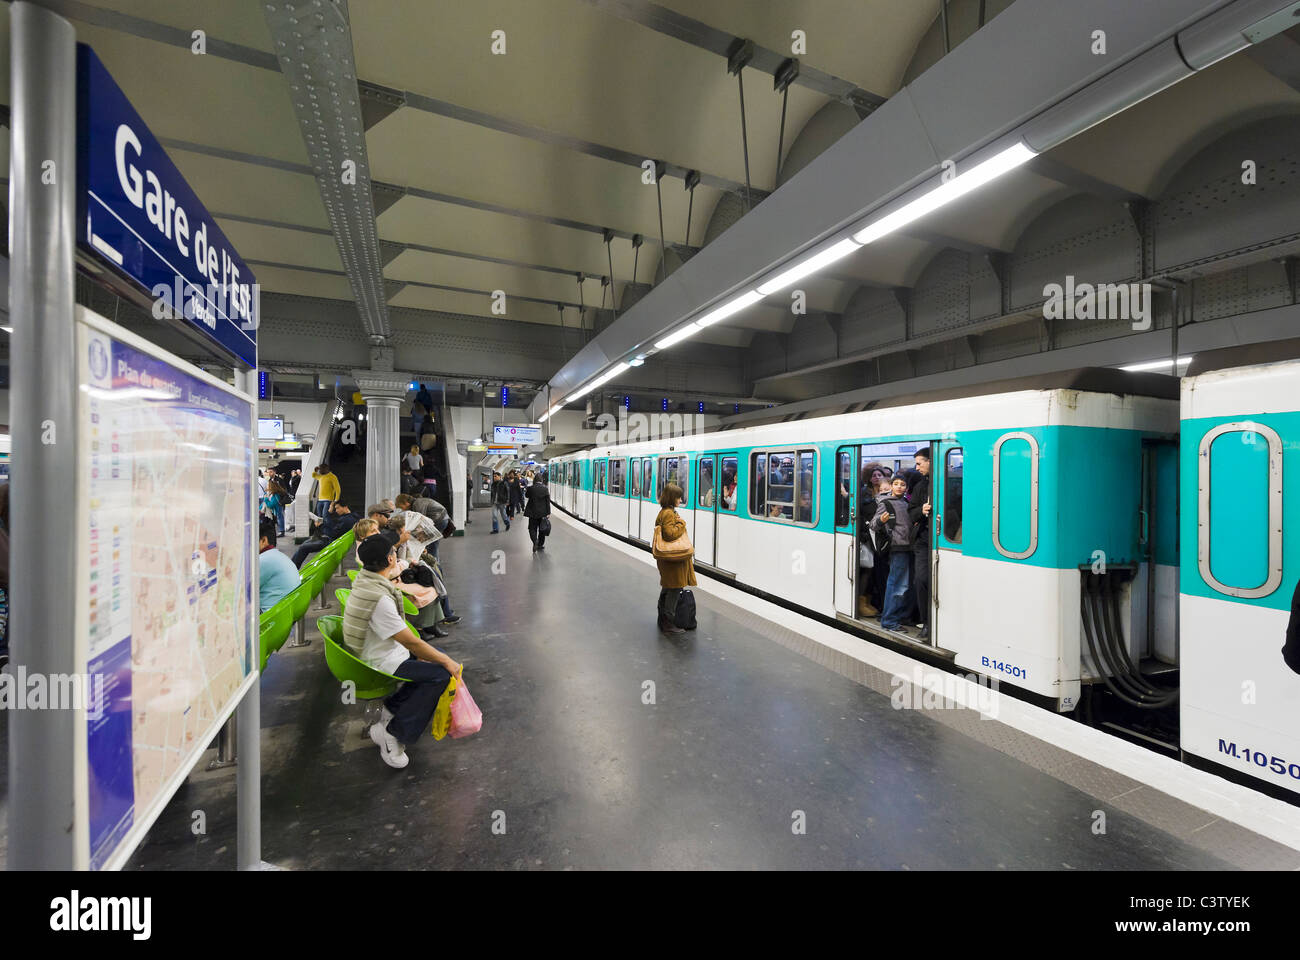 Train in the Gare de l'Est Metro station, Paris, France - Stock Image